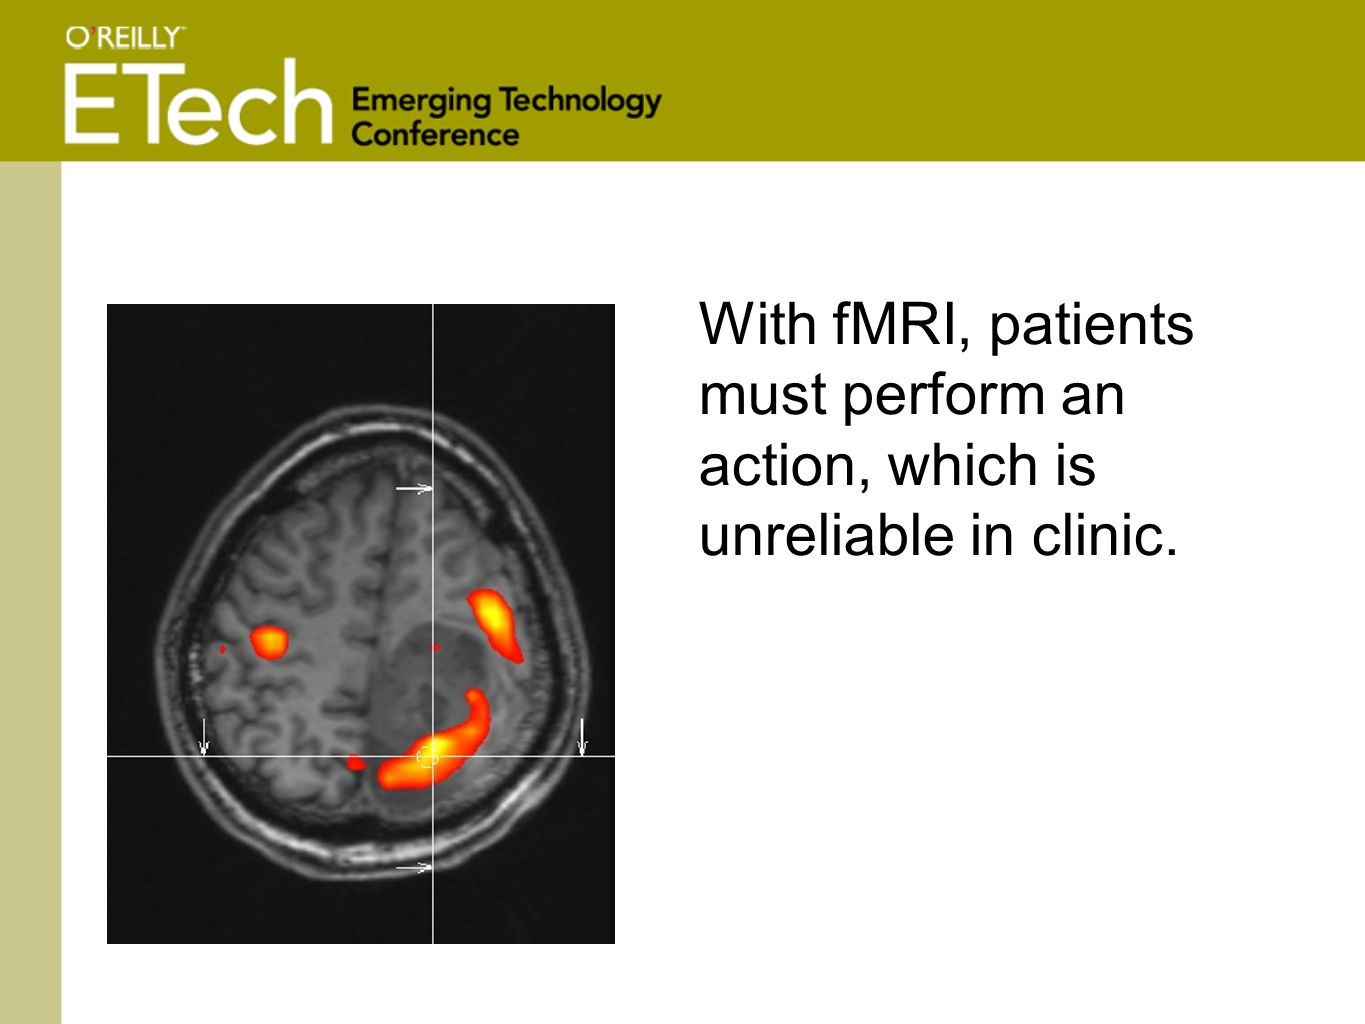 With fMRI, patients must perform an action, which is unreliable in clinic.